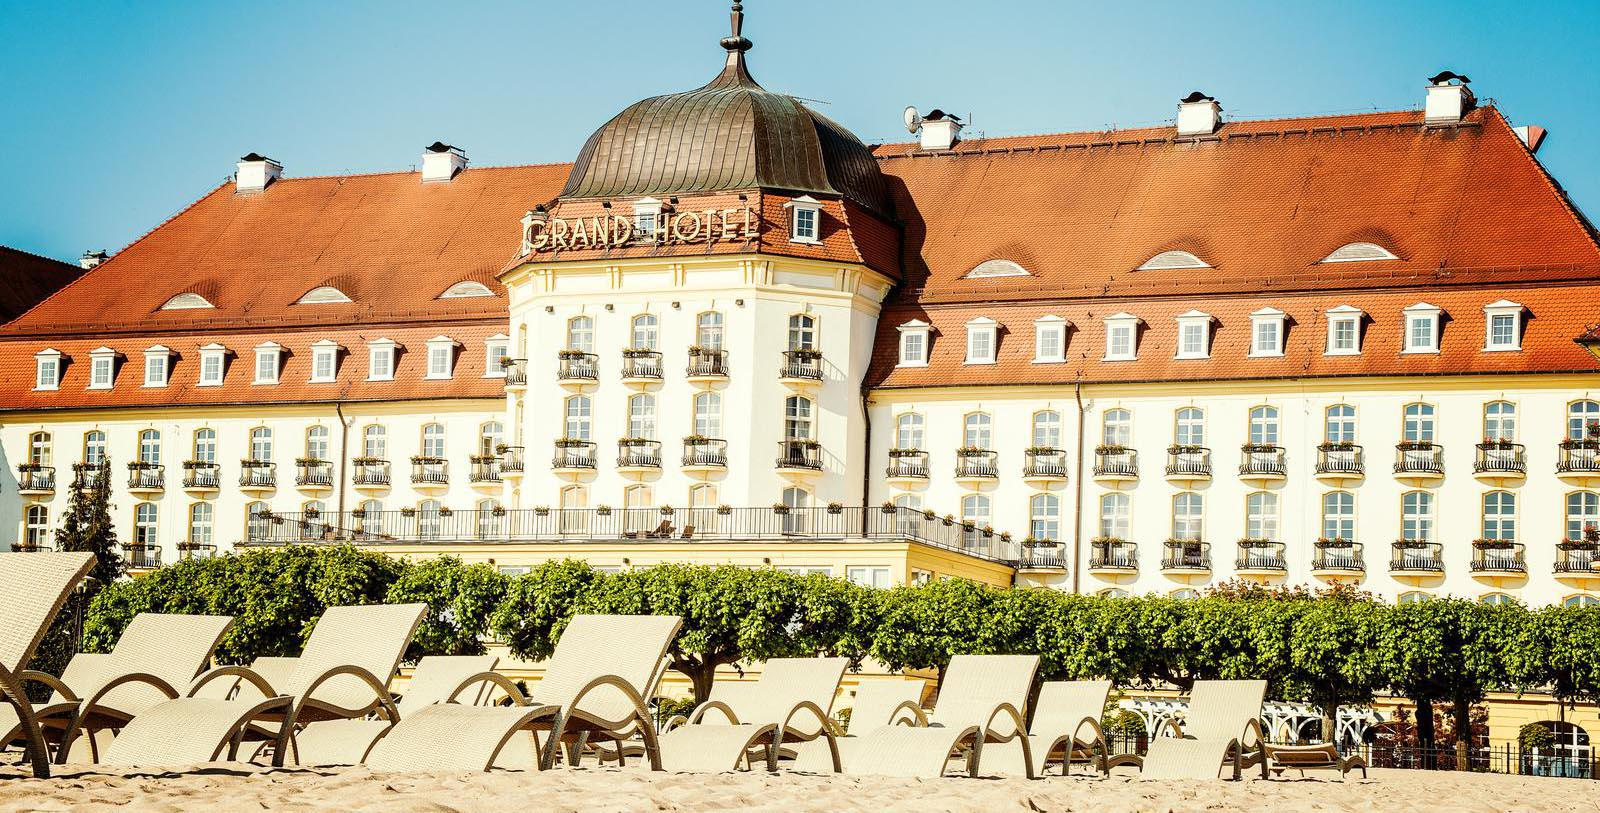 Image of Hotel Façade Sofitel Grand Sopot, 1927, Member of Historic Hotels Worldwide, in Sopot, Poland, Special Offers, Discounted Rates, Families, Romantic Escape, Honeymoons, Anniversaries, Reunions